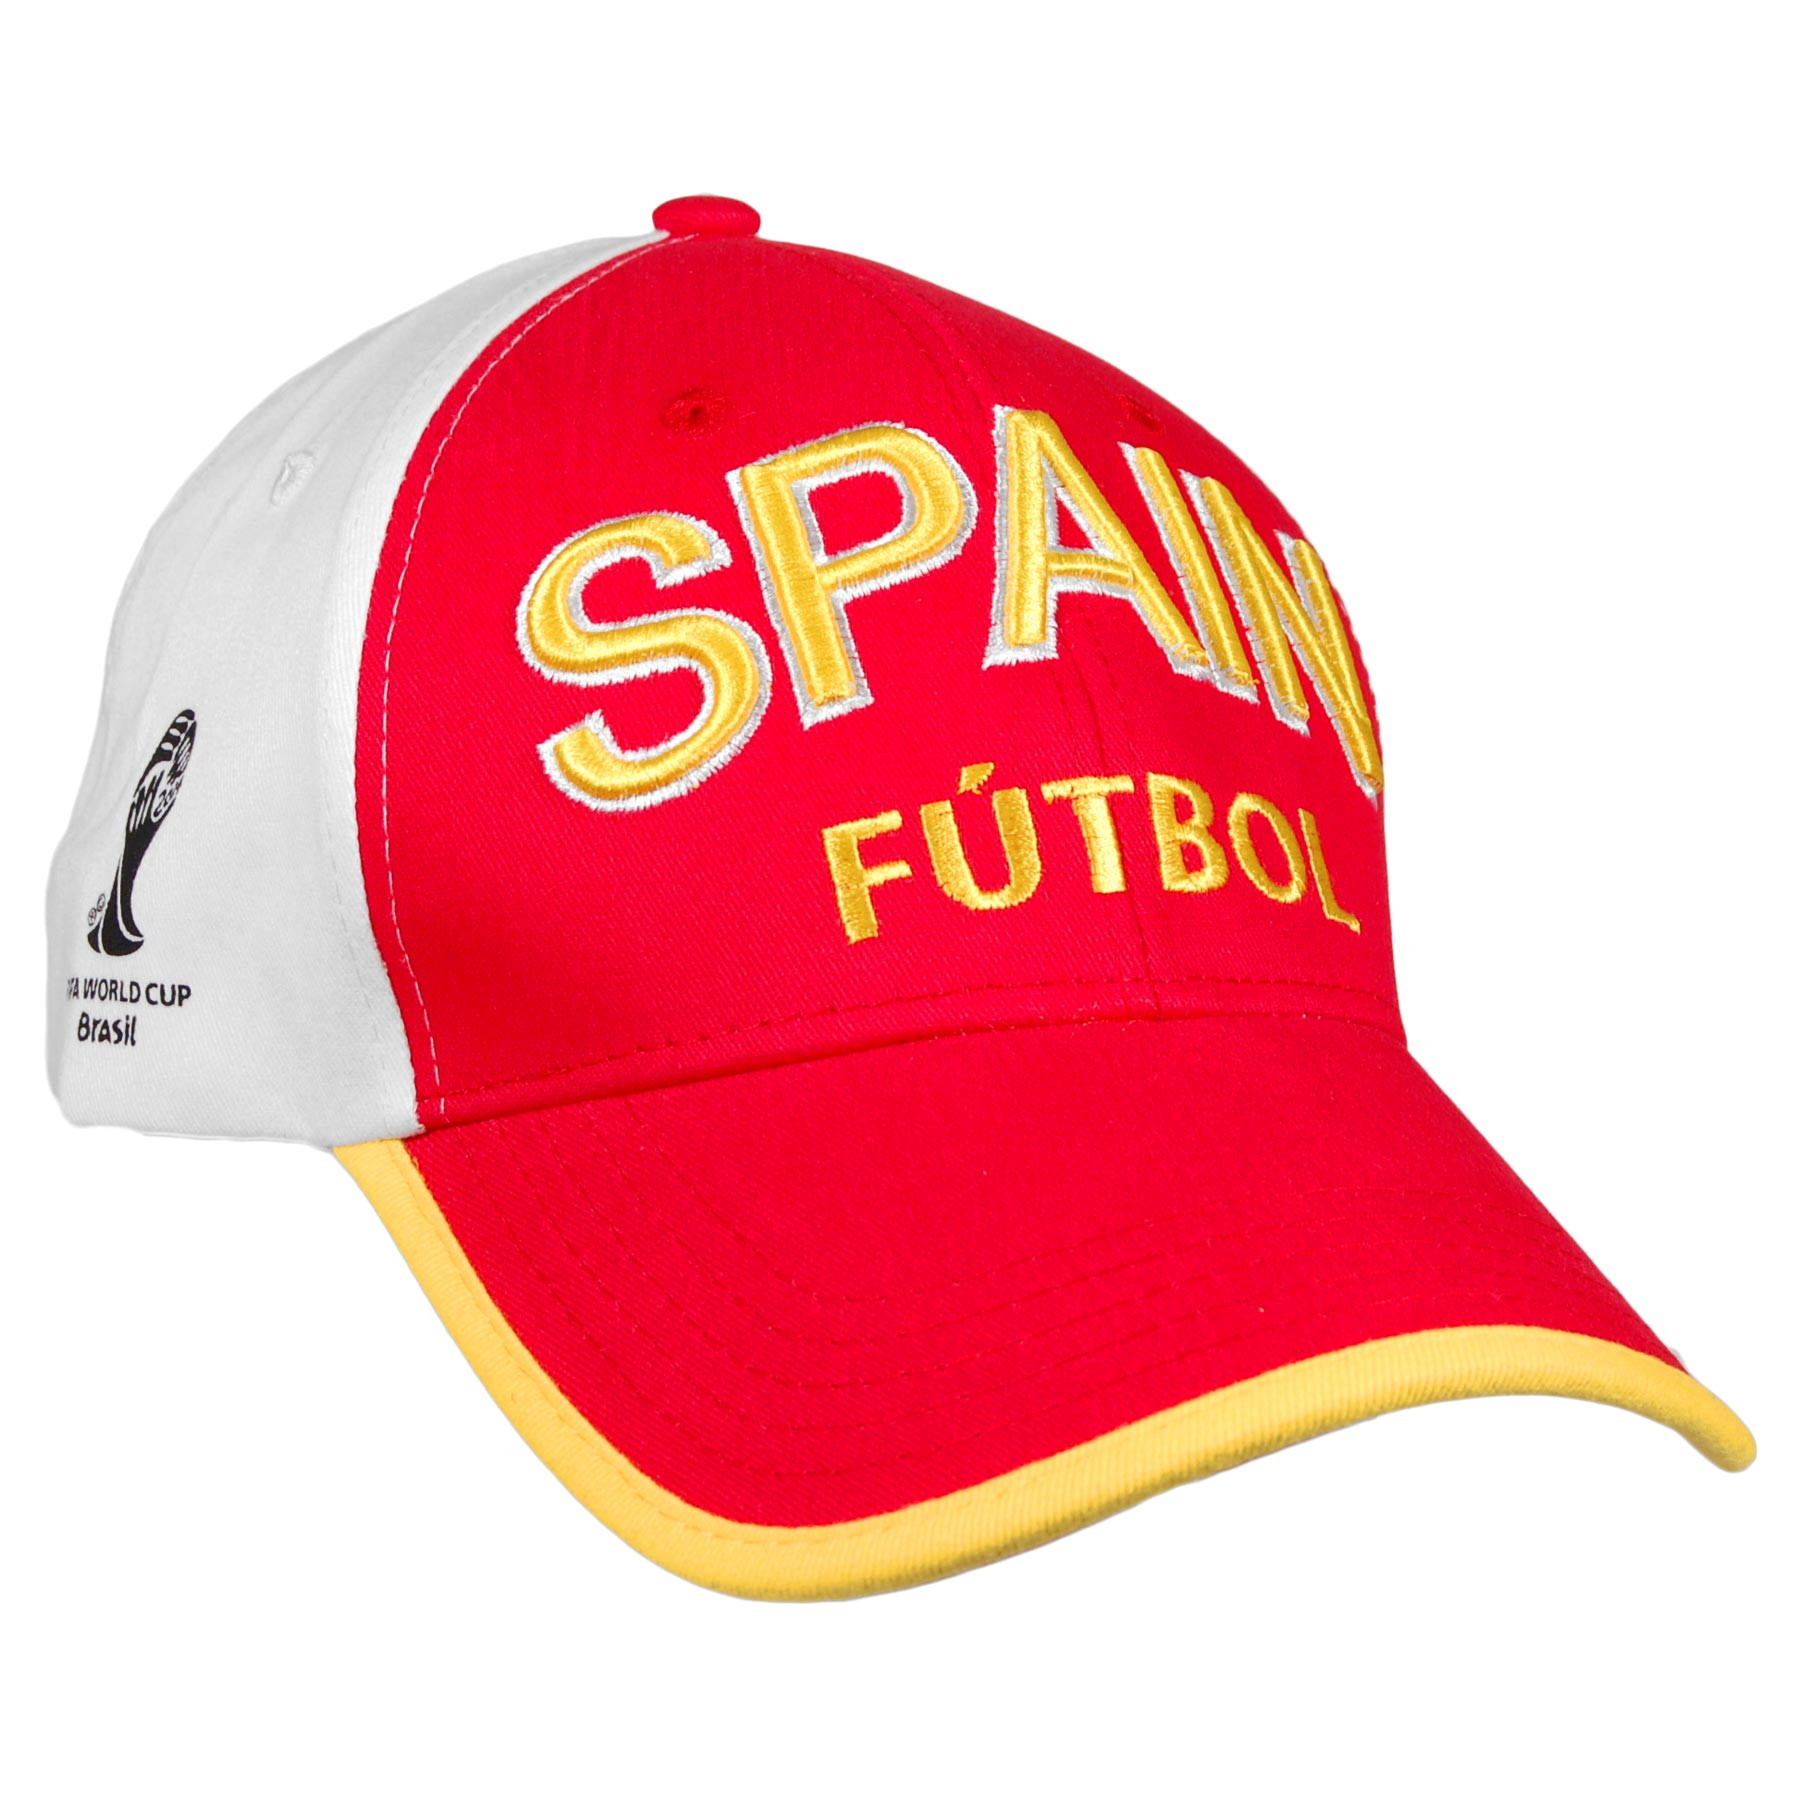 Spain 2014 FIFA World Cup Bola Cap